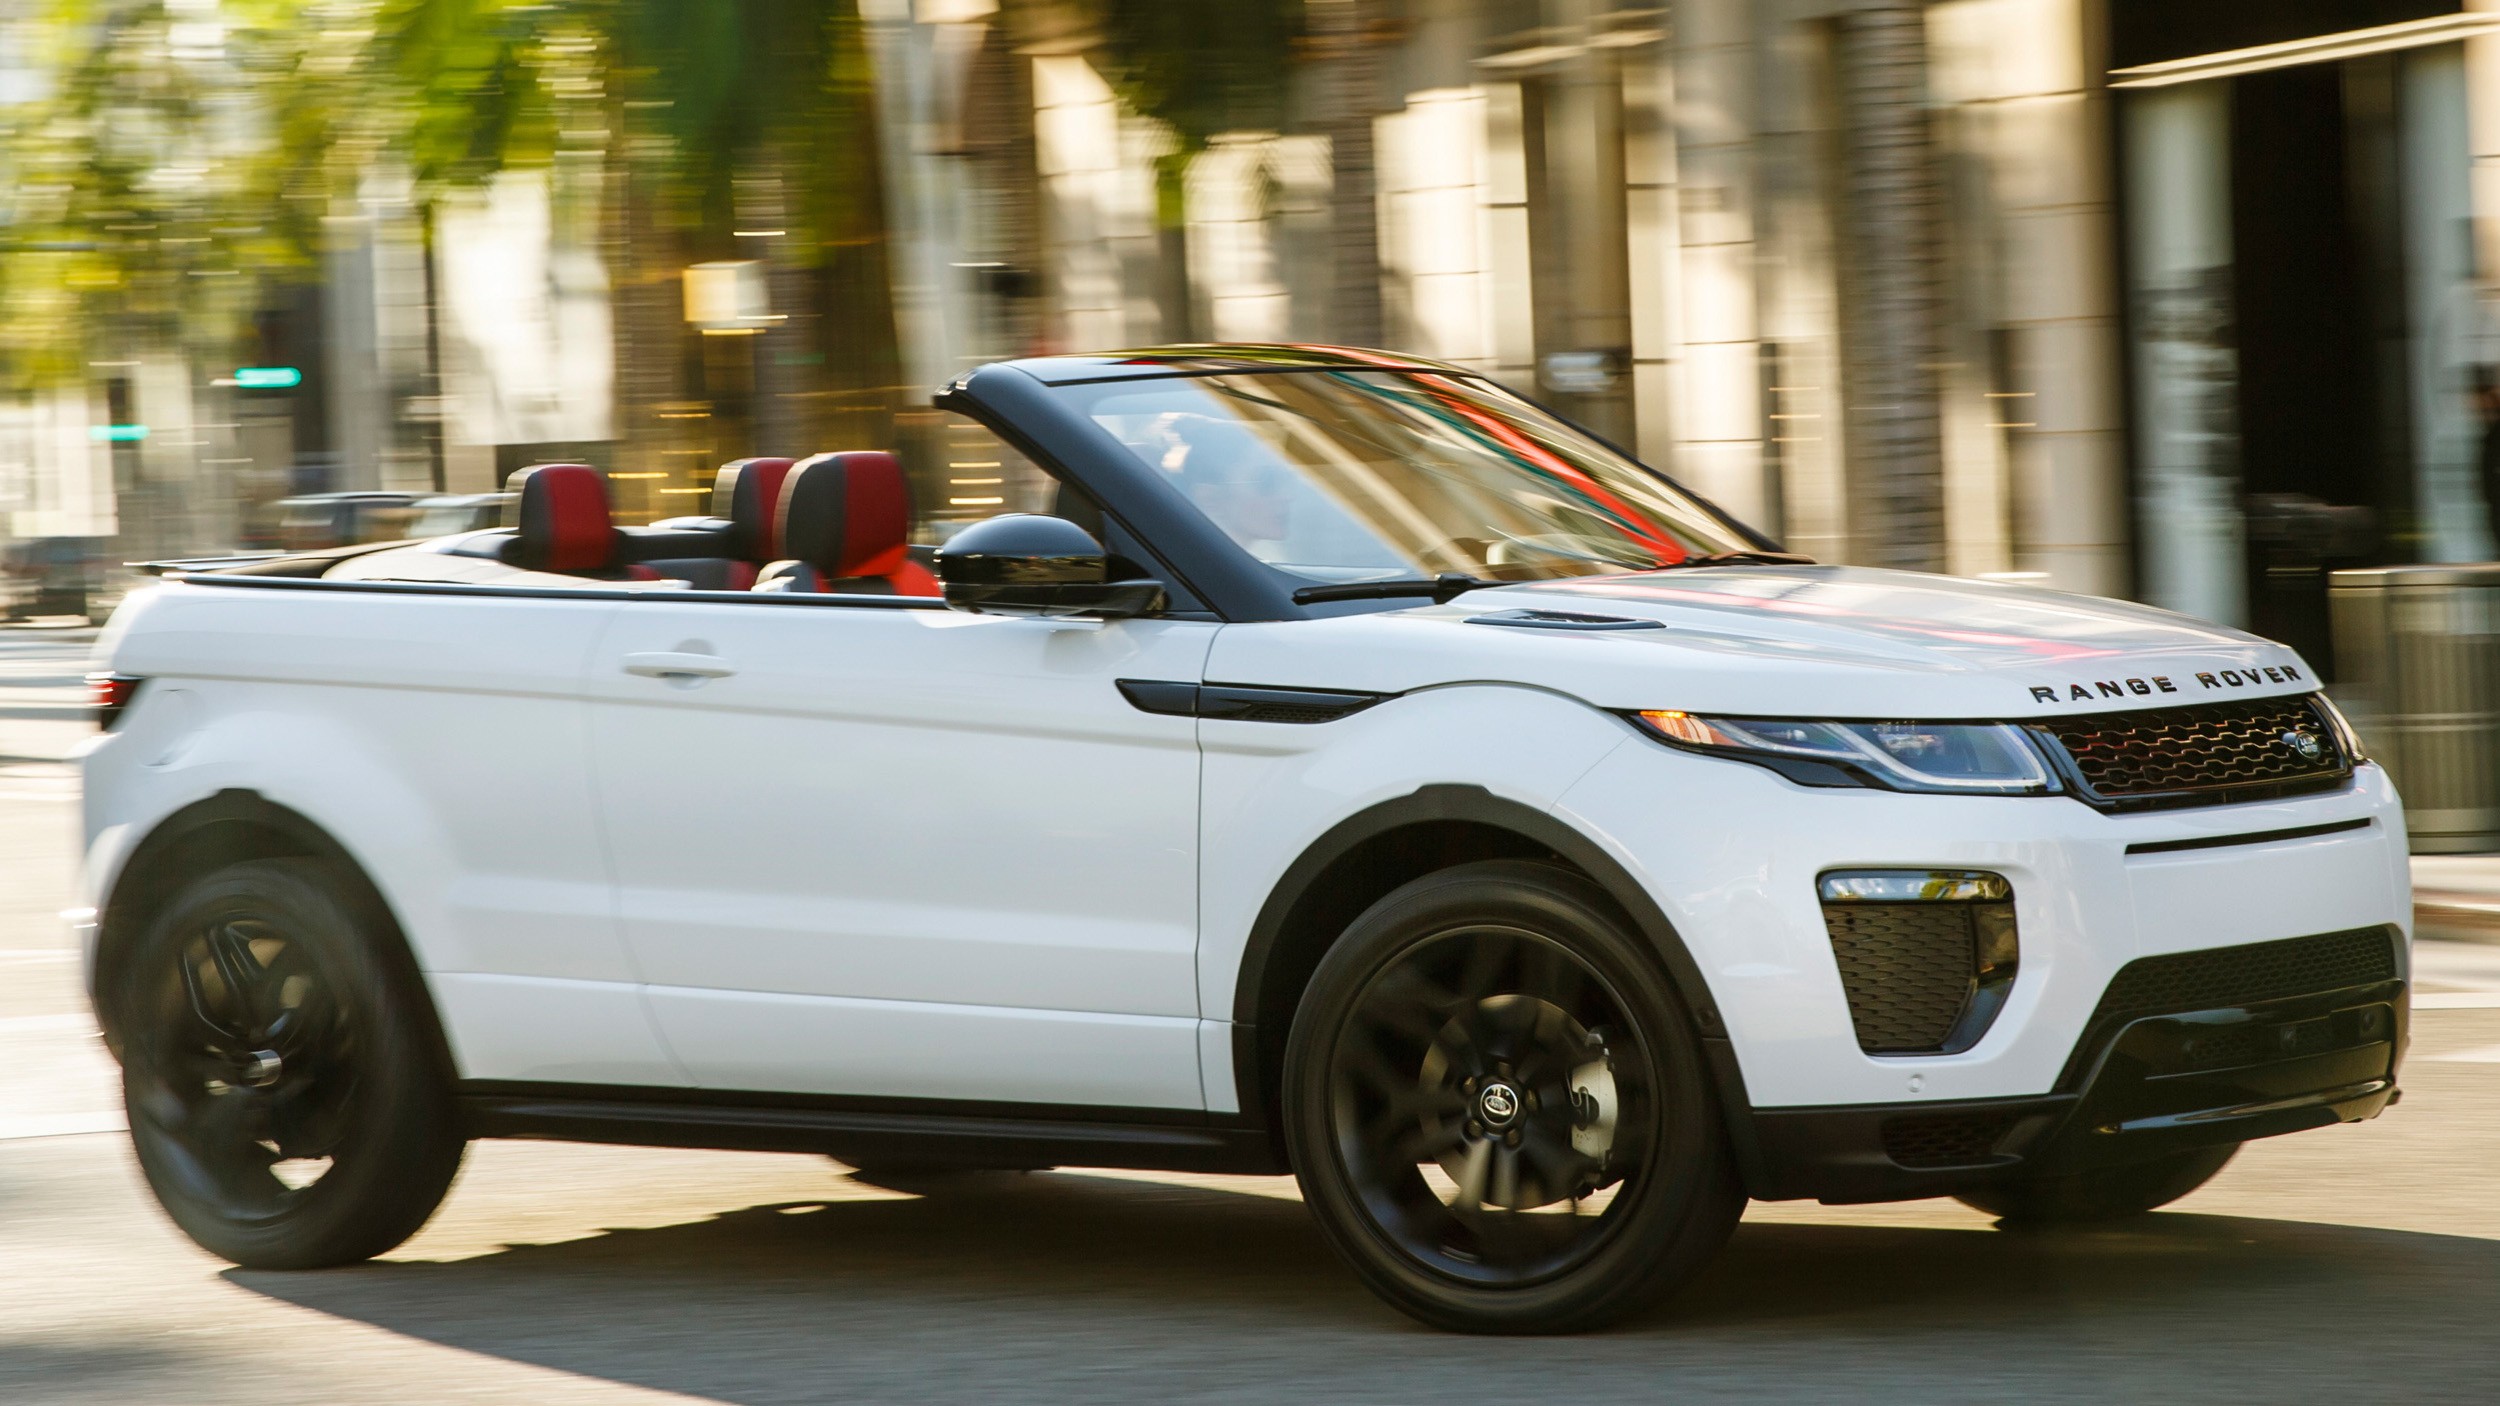 ... Kind Of Dog Is In The Range Rover Evoque Commercial - Breed of Dog